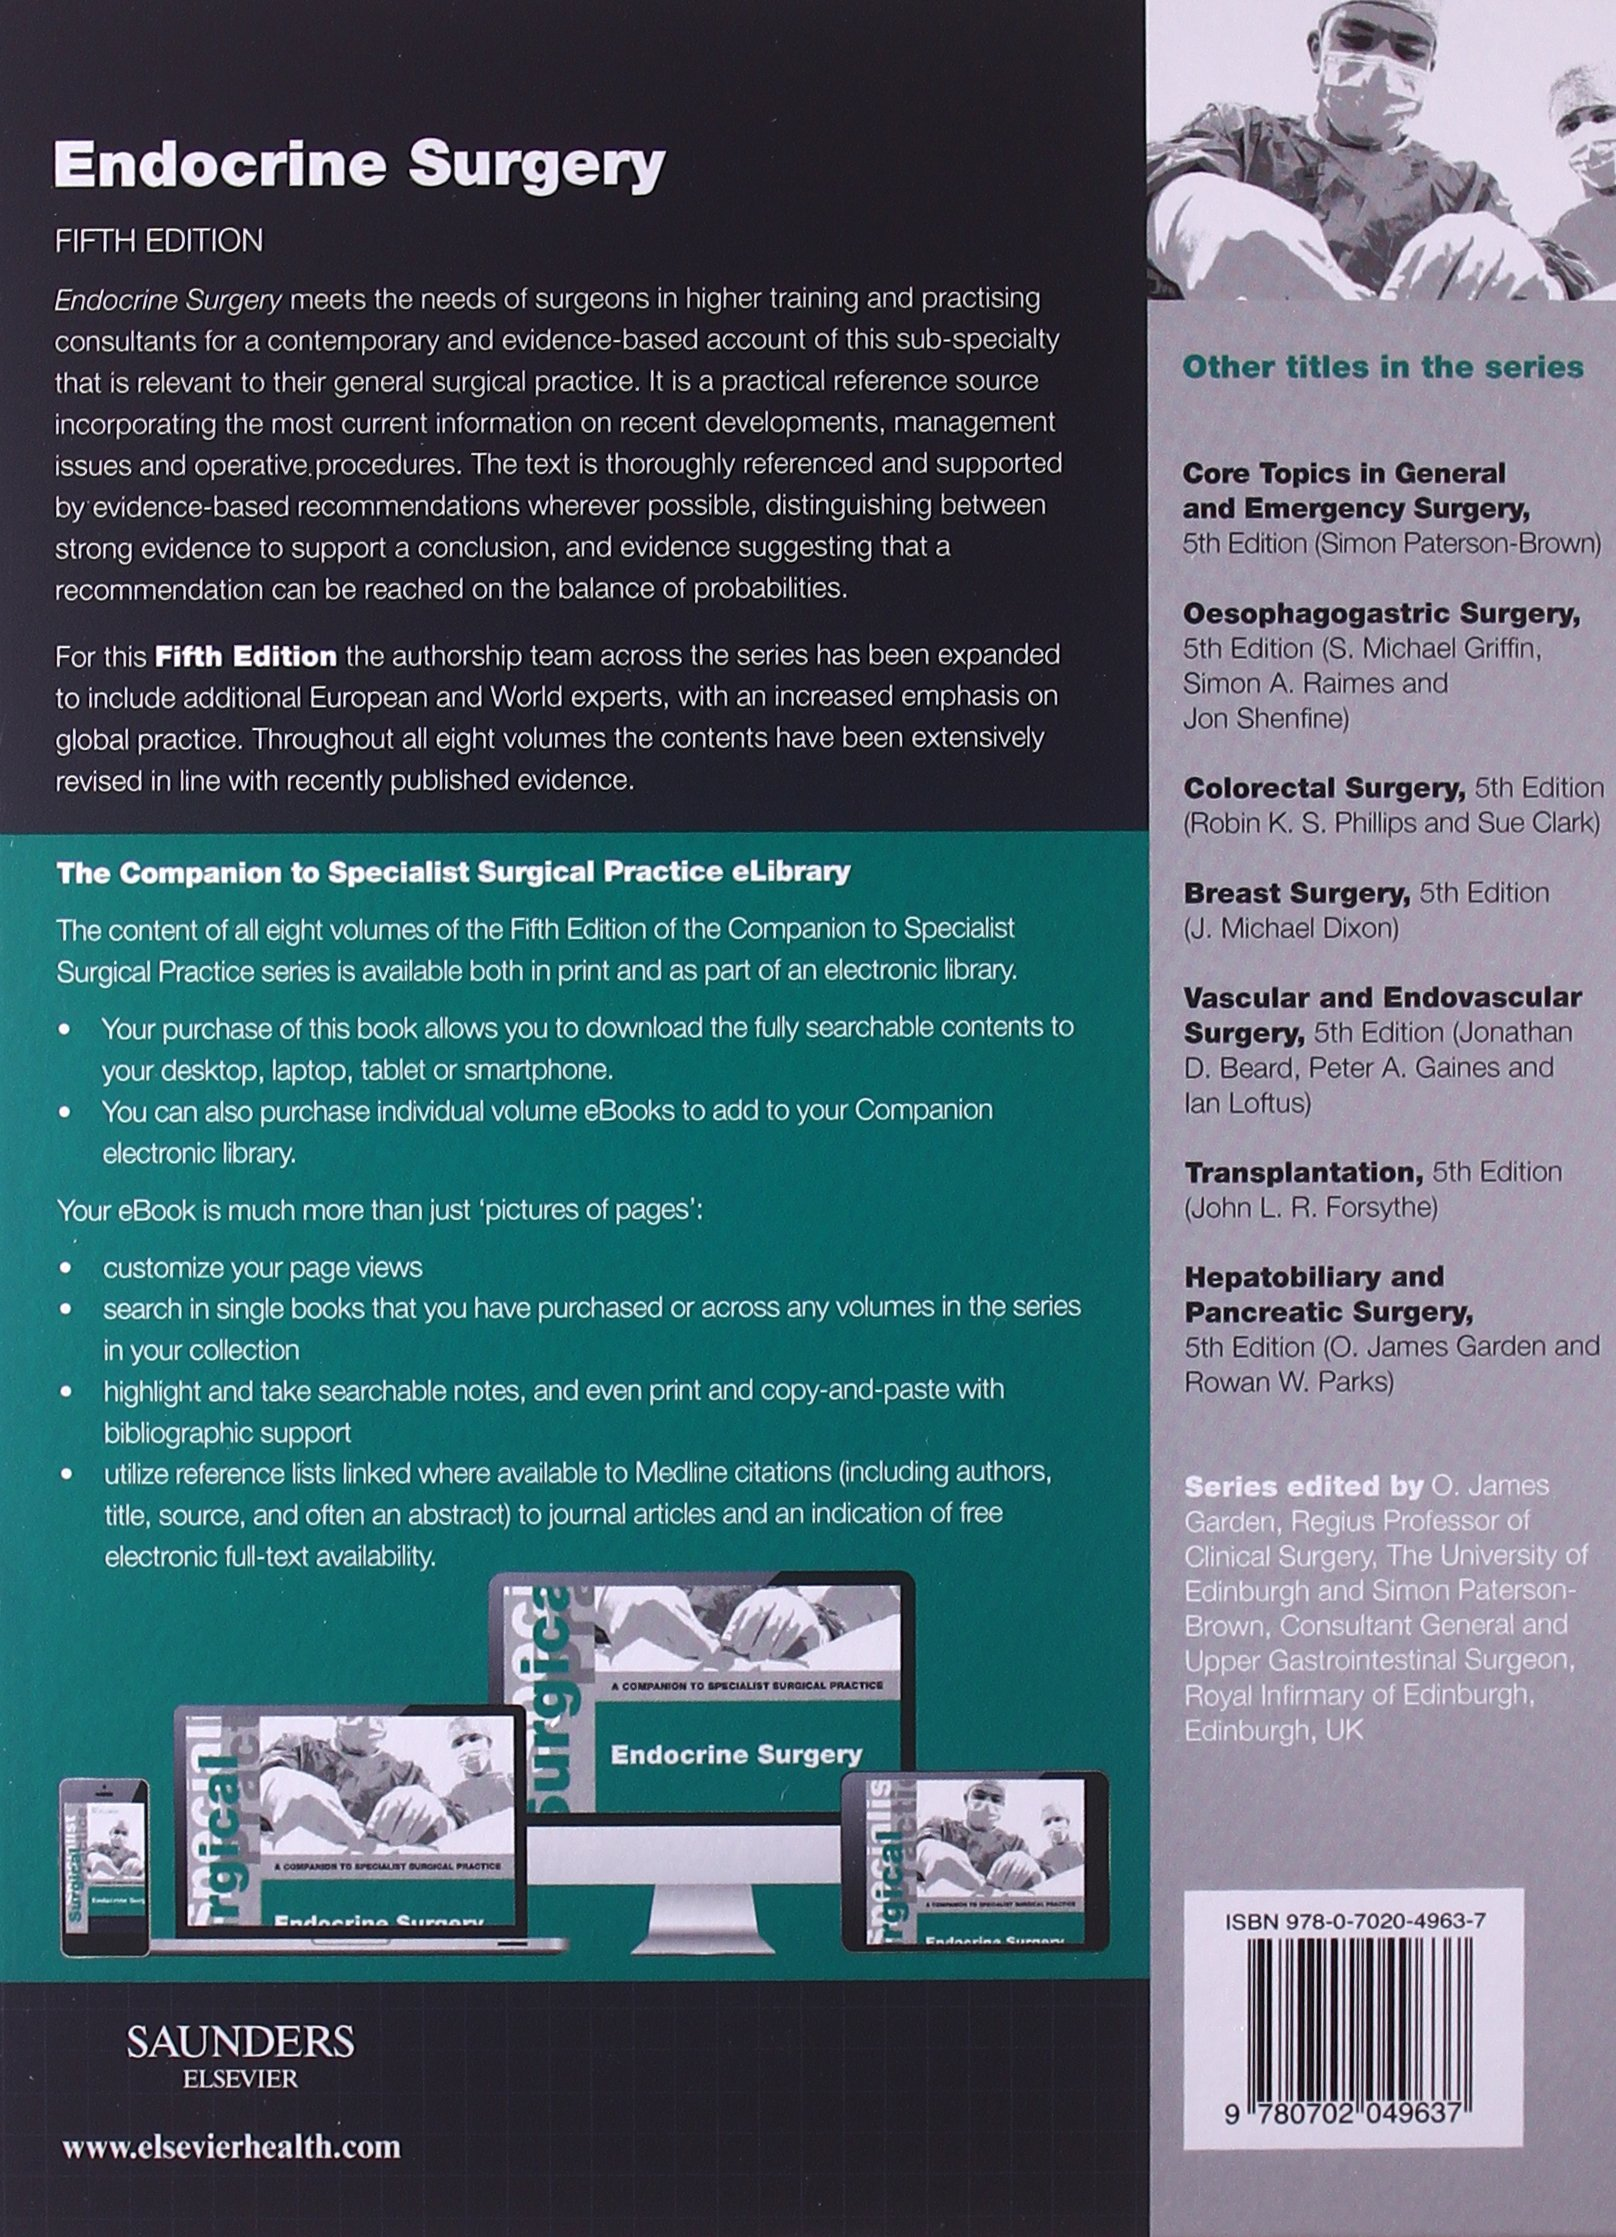 Endocrine Surgery - Print and E-Book: A Companion to Specialist Surgical Practice by Brand: Saunders Ltd.